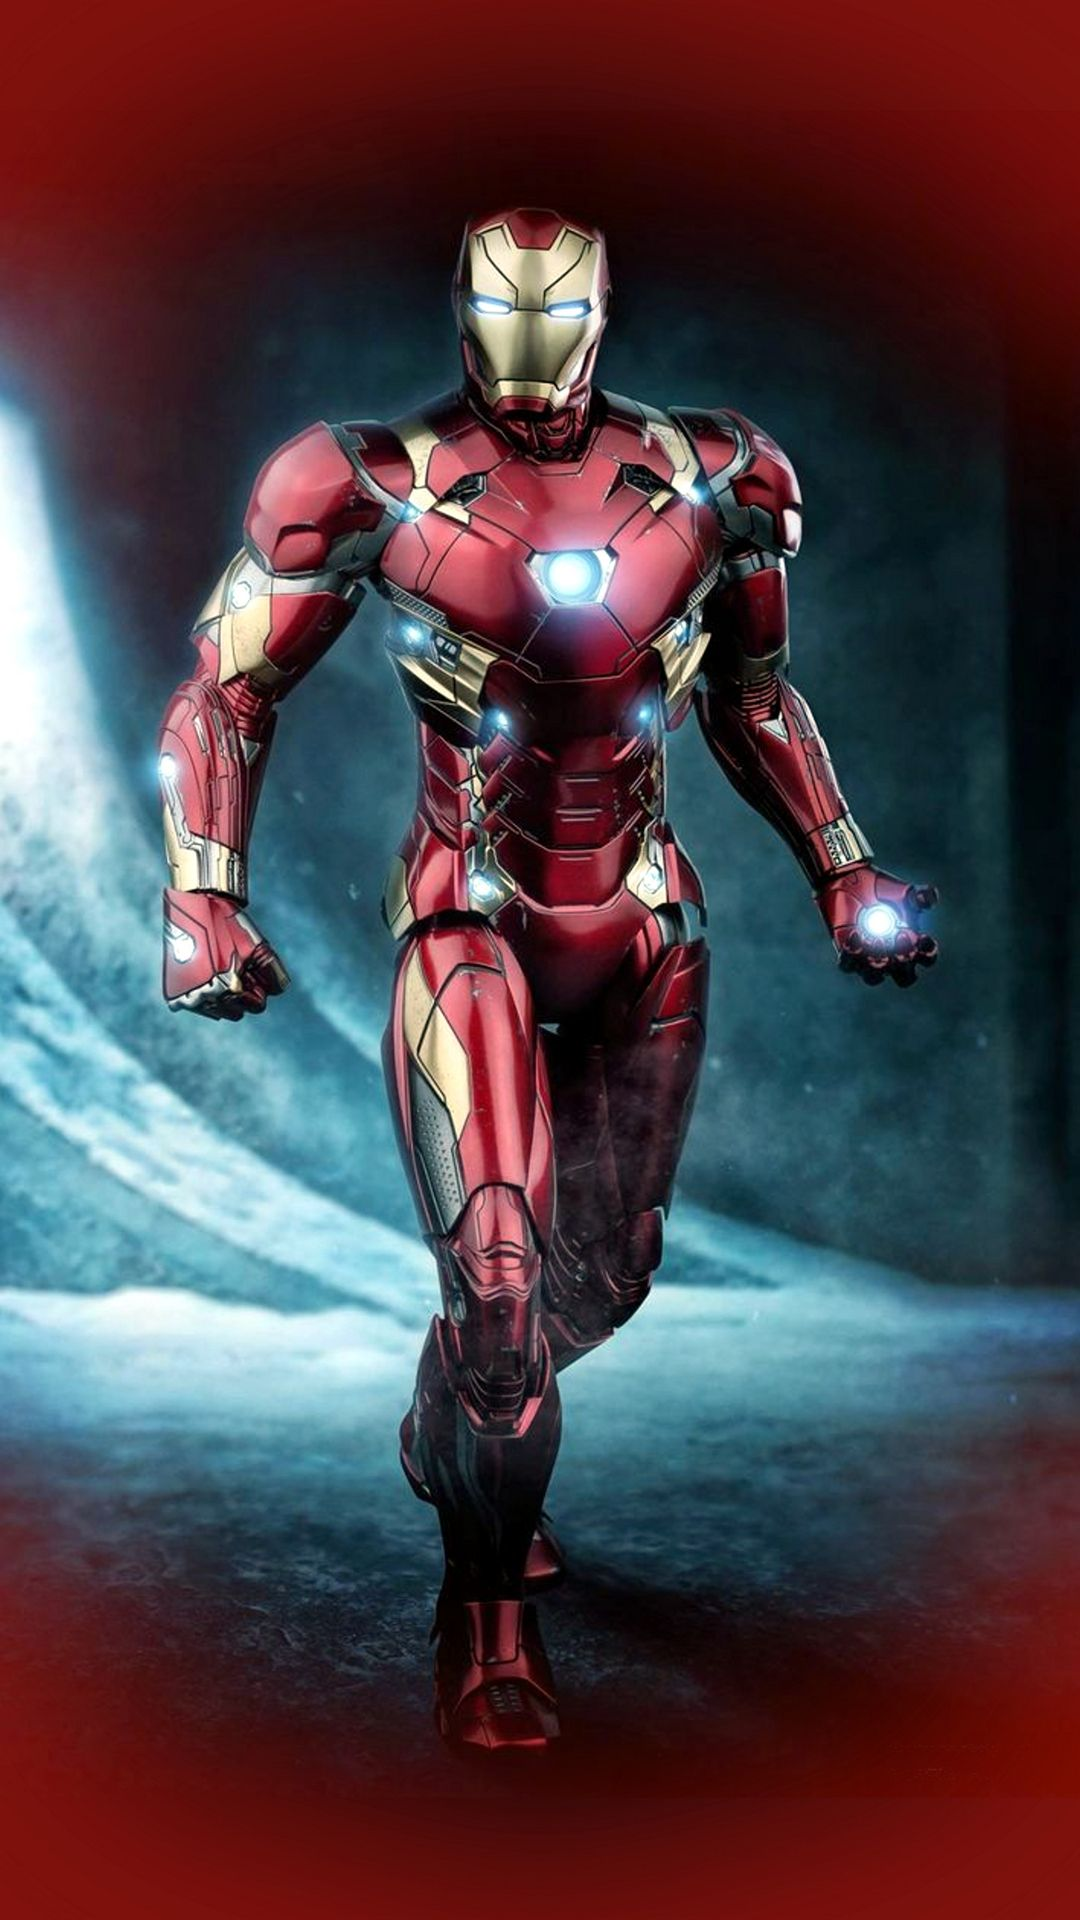 Iron Man Mobile Hd Wallpaper In 2020 Iron Man Art Iron Man Photos Iron Man Avengers